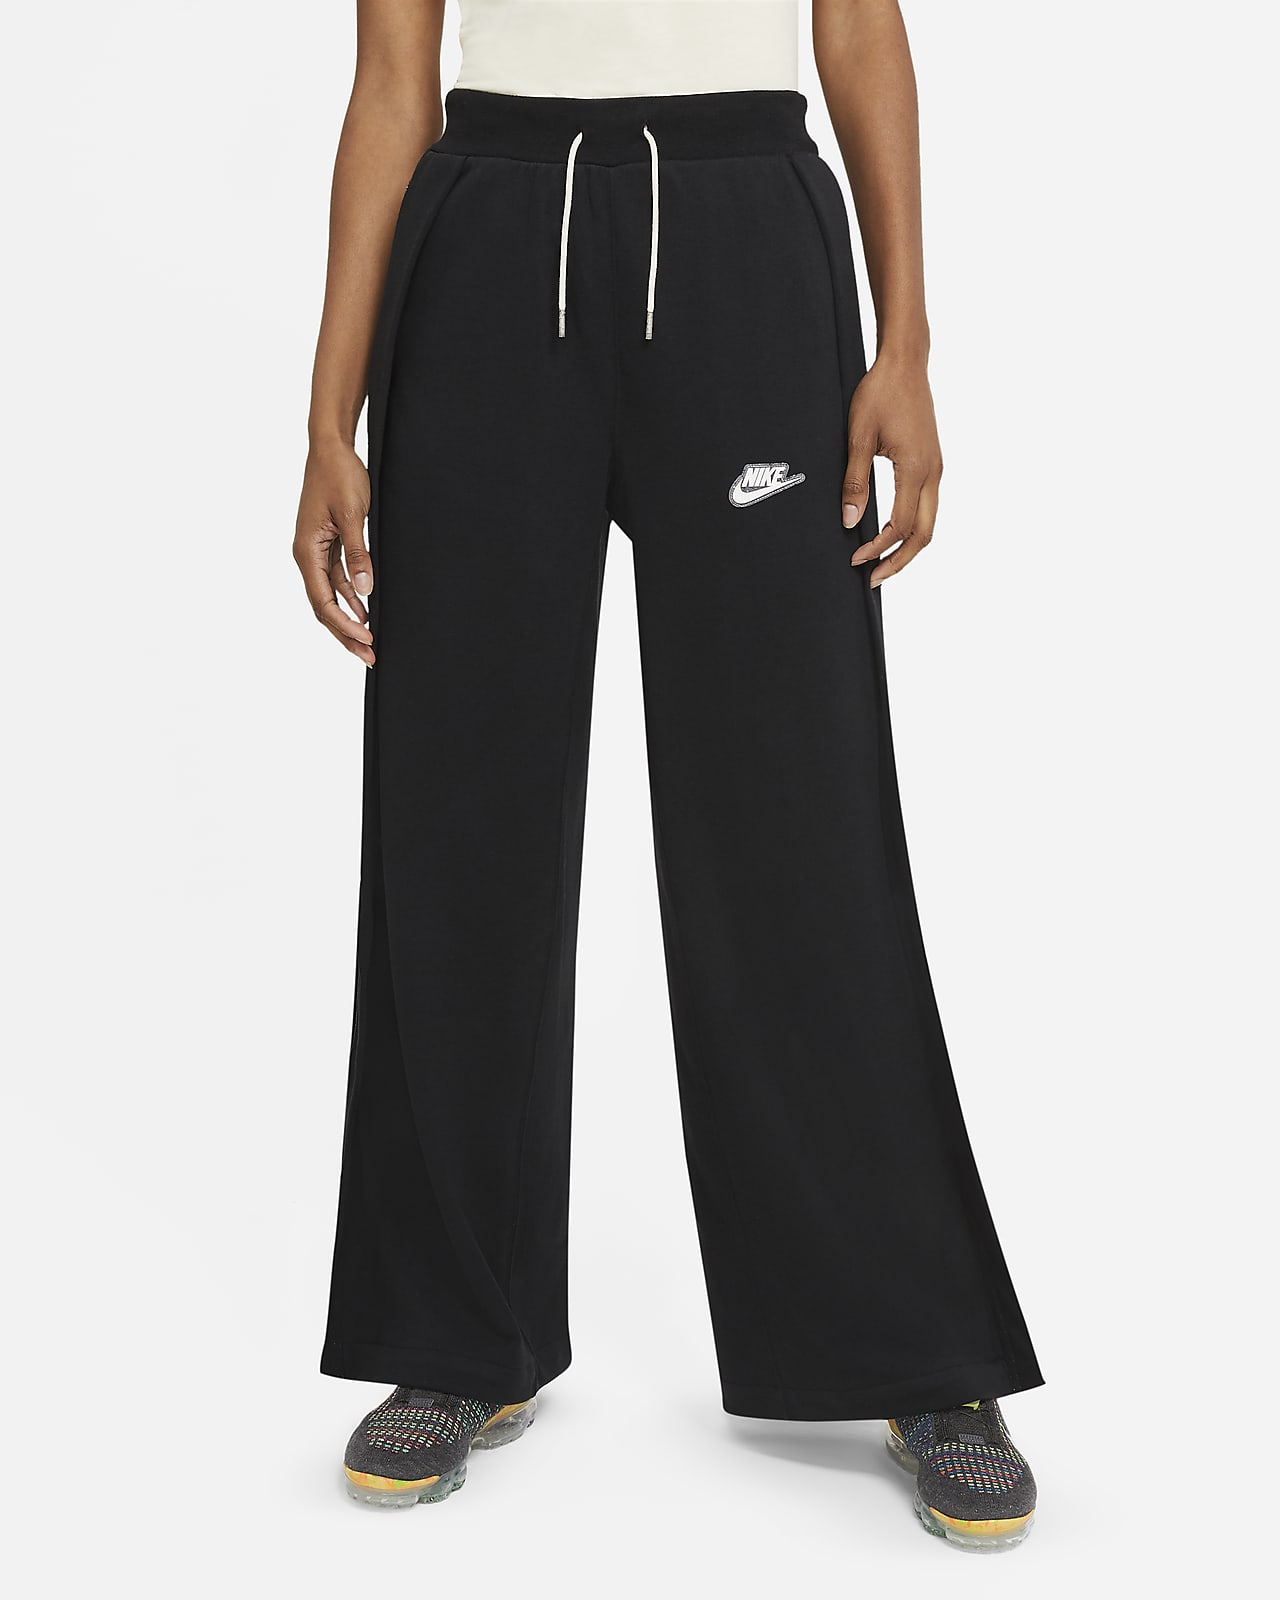 Pantaloni in French terry Nike Sportswear - Donna